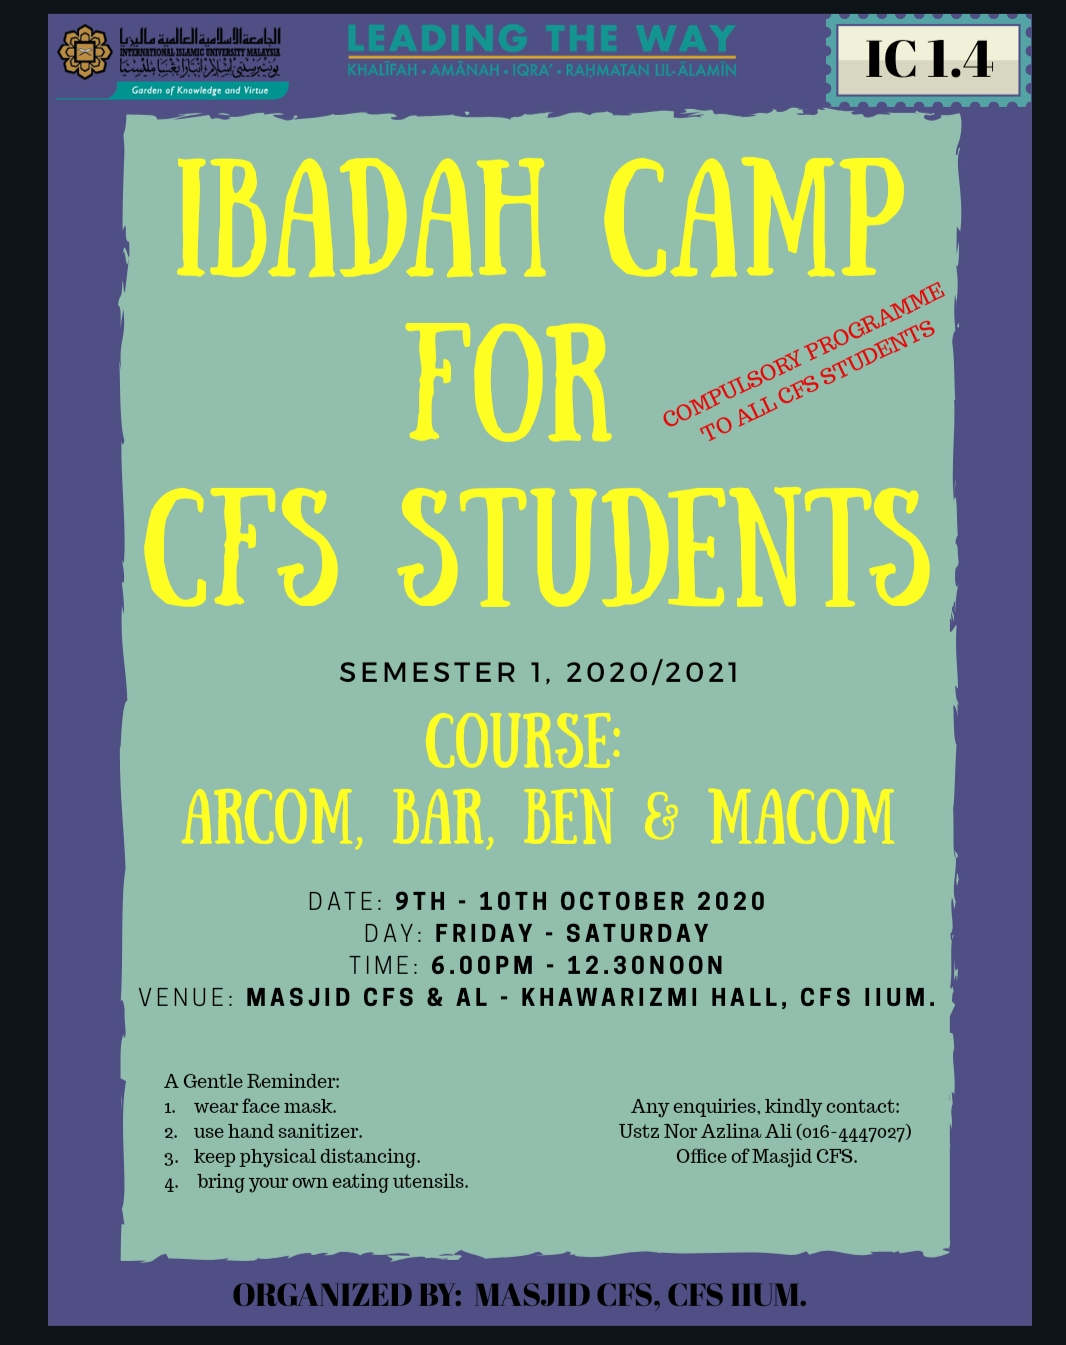 IBADAH CAMP FOR CFS STUDENTS (ARCOM, BAR, BEN & MACOM)